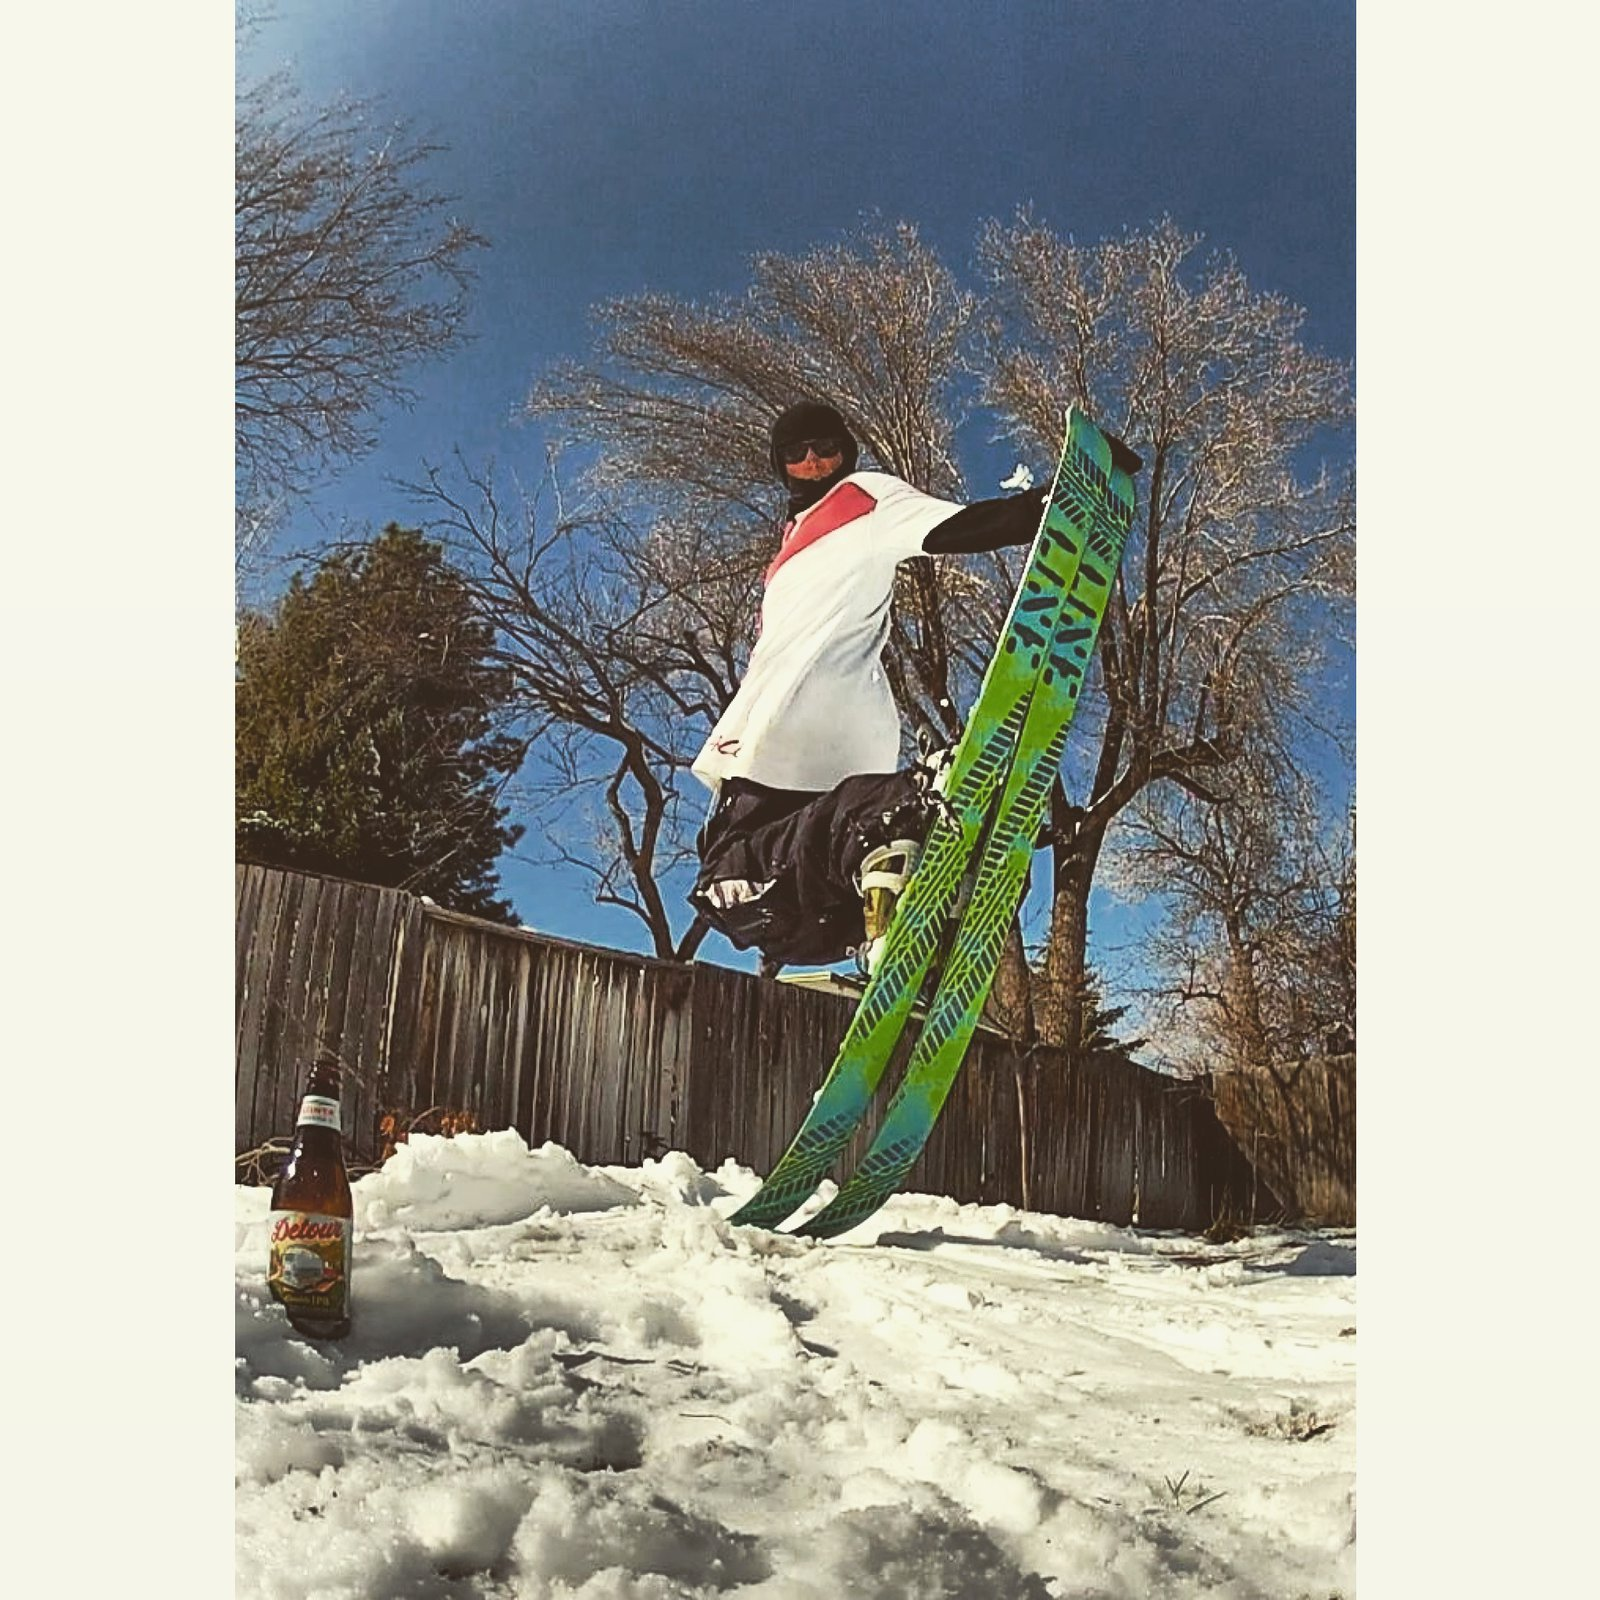 REAL skiing in REAL backyards